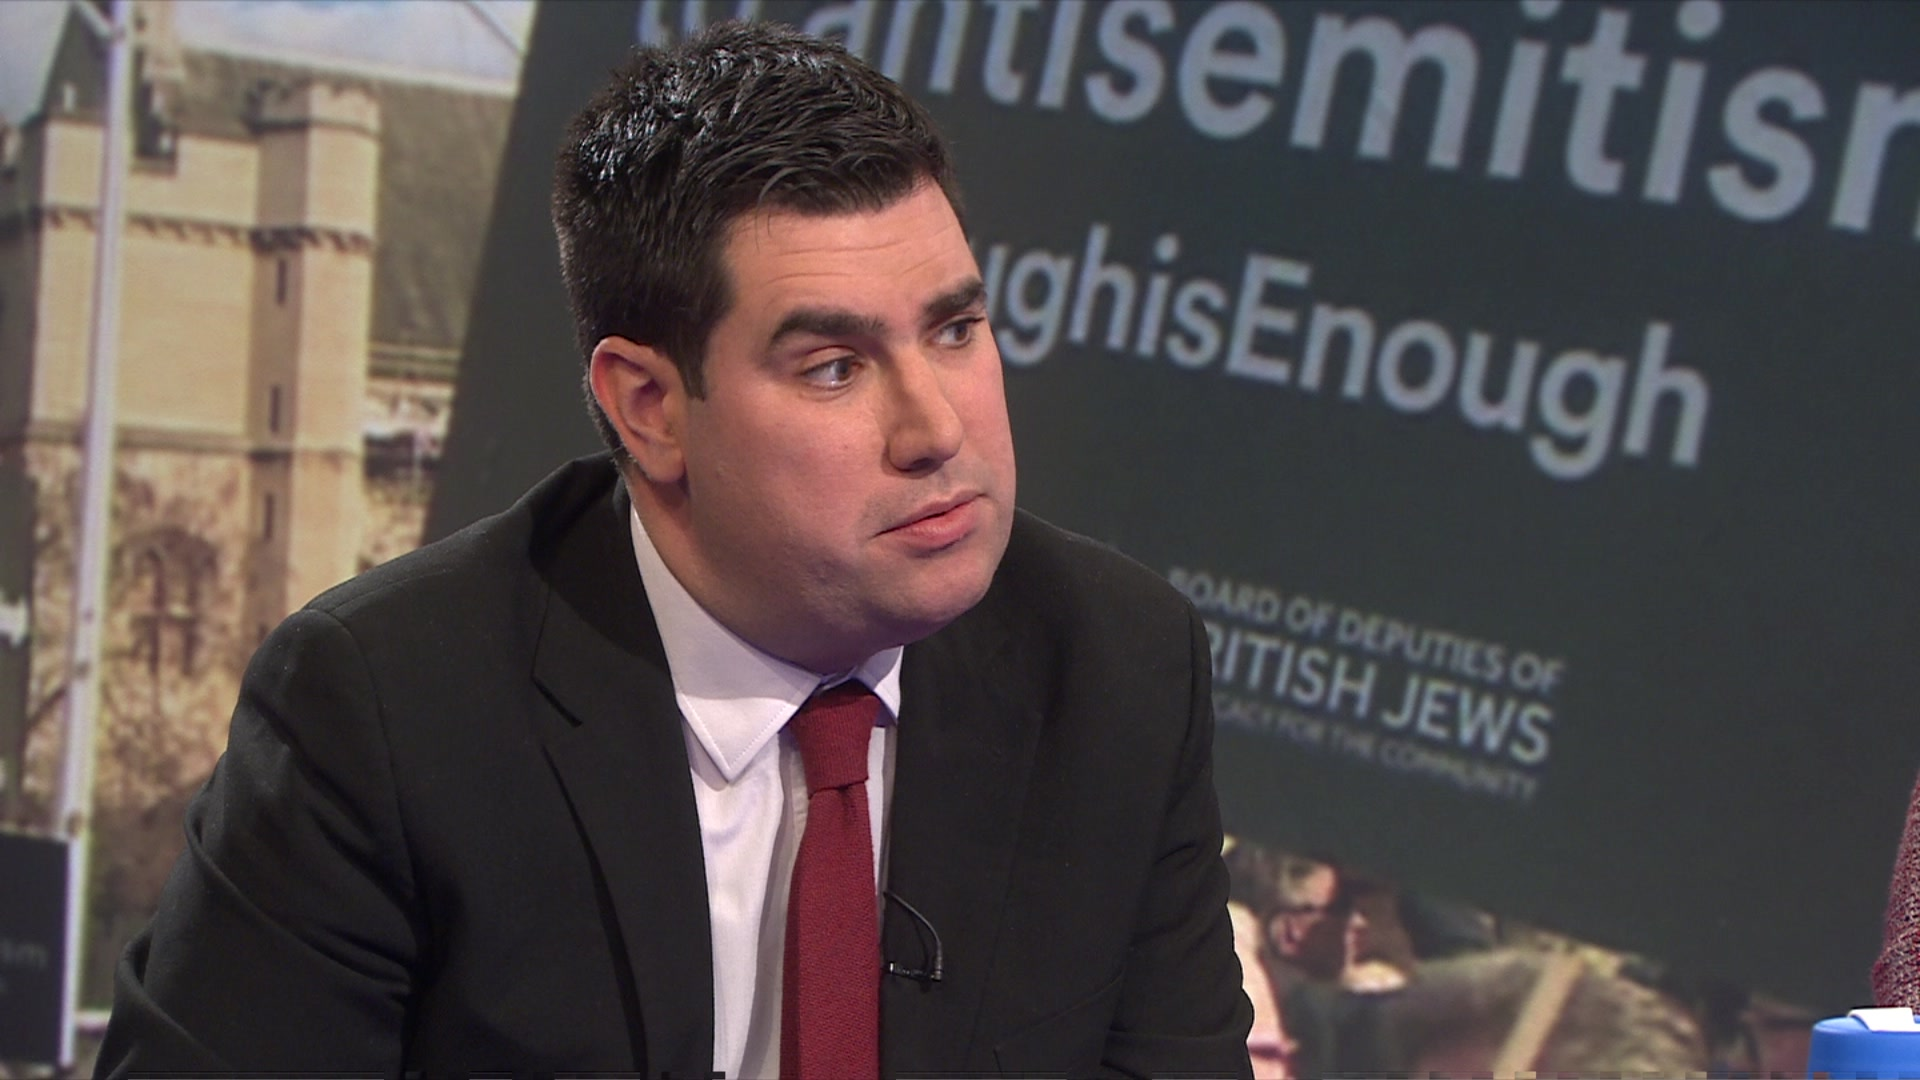 Burgon's 'regret' at Zionism comments